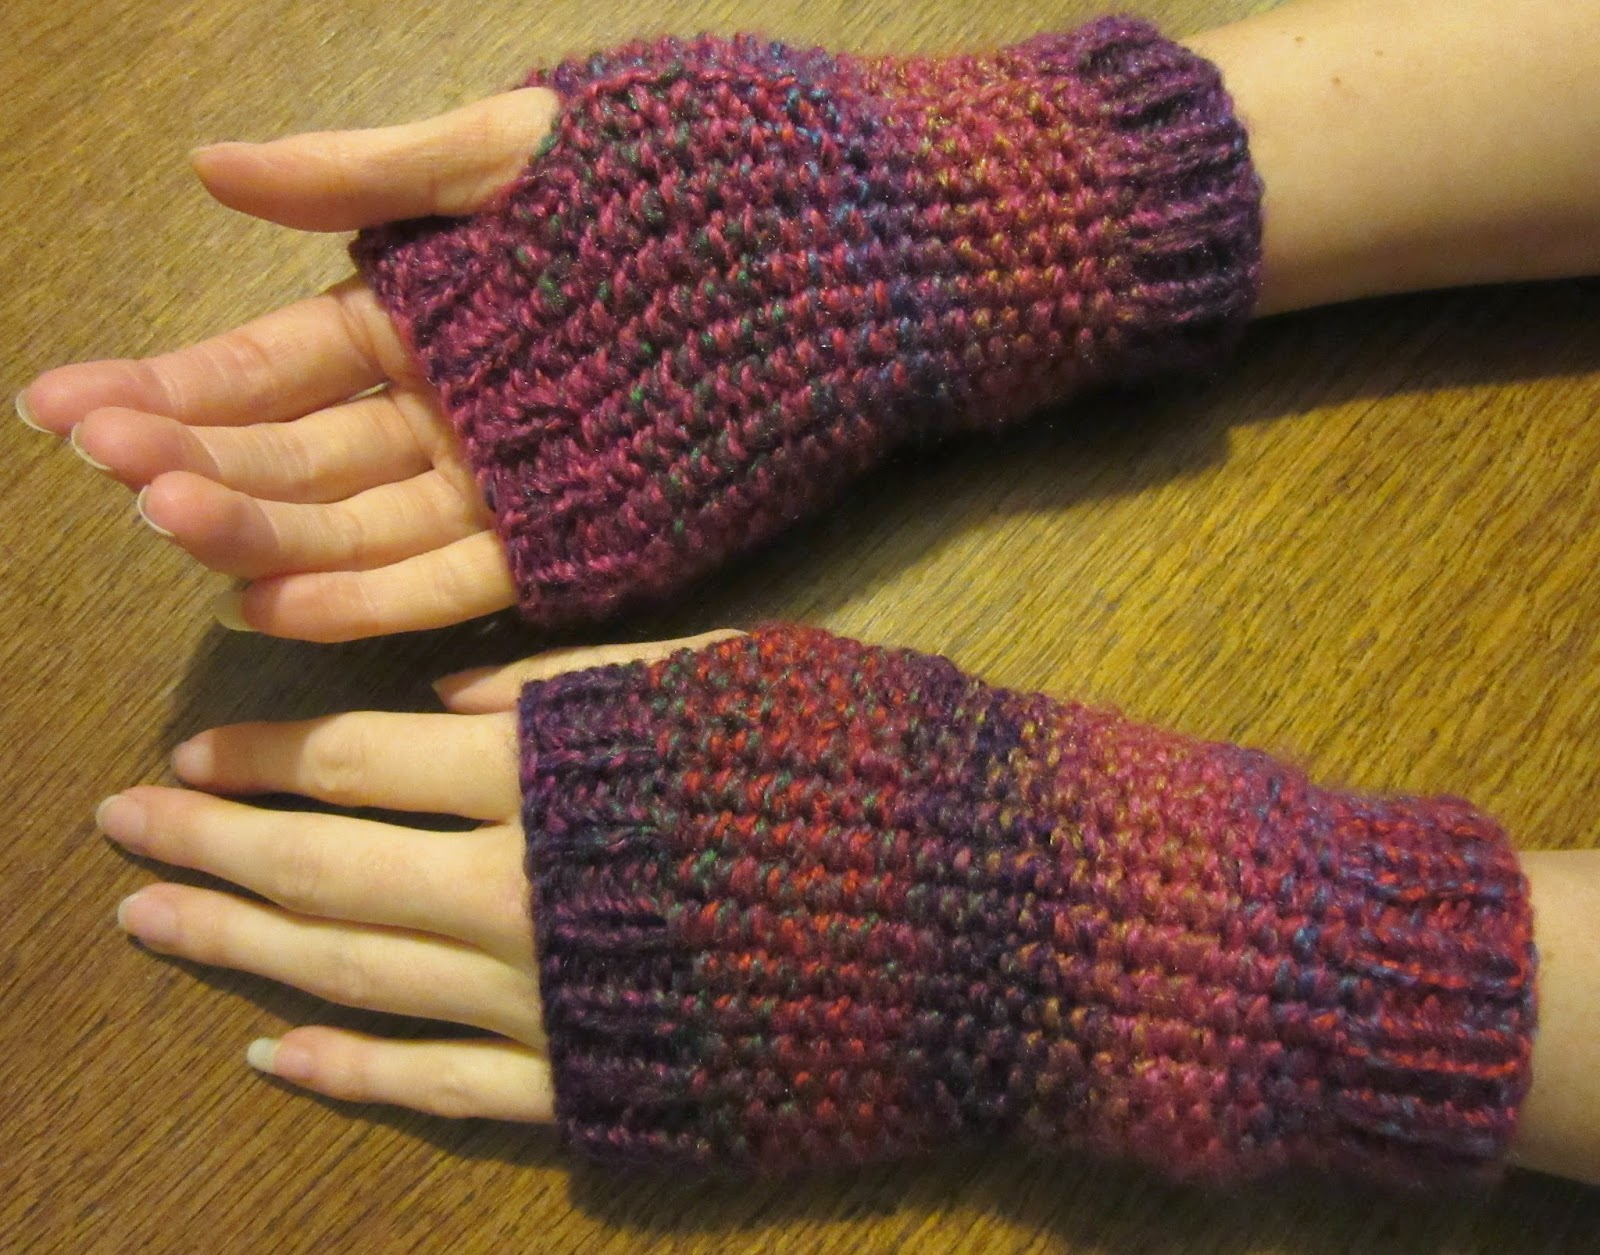 Knitted Hand Warmers Free Patterns : Handmadebymeg: Free Simple Knitting Pattern for Wrist Warmers